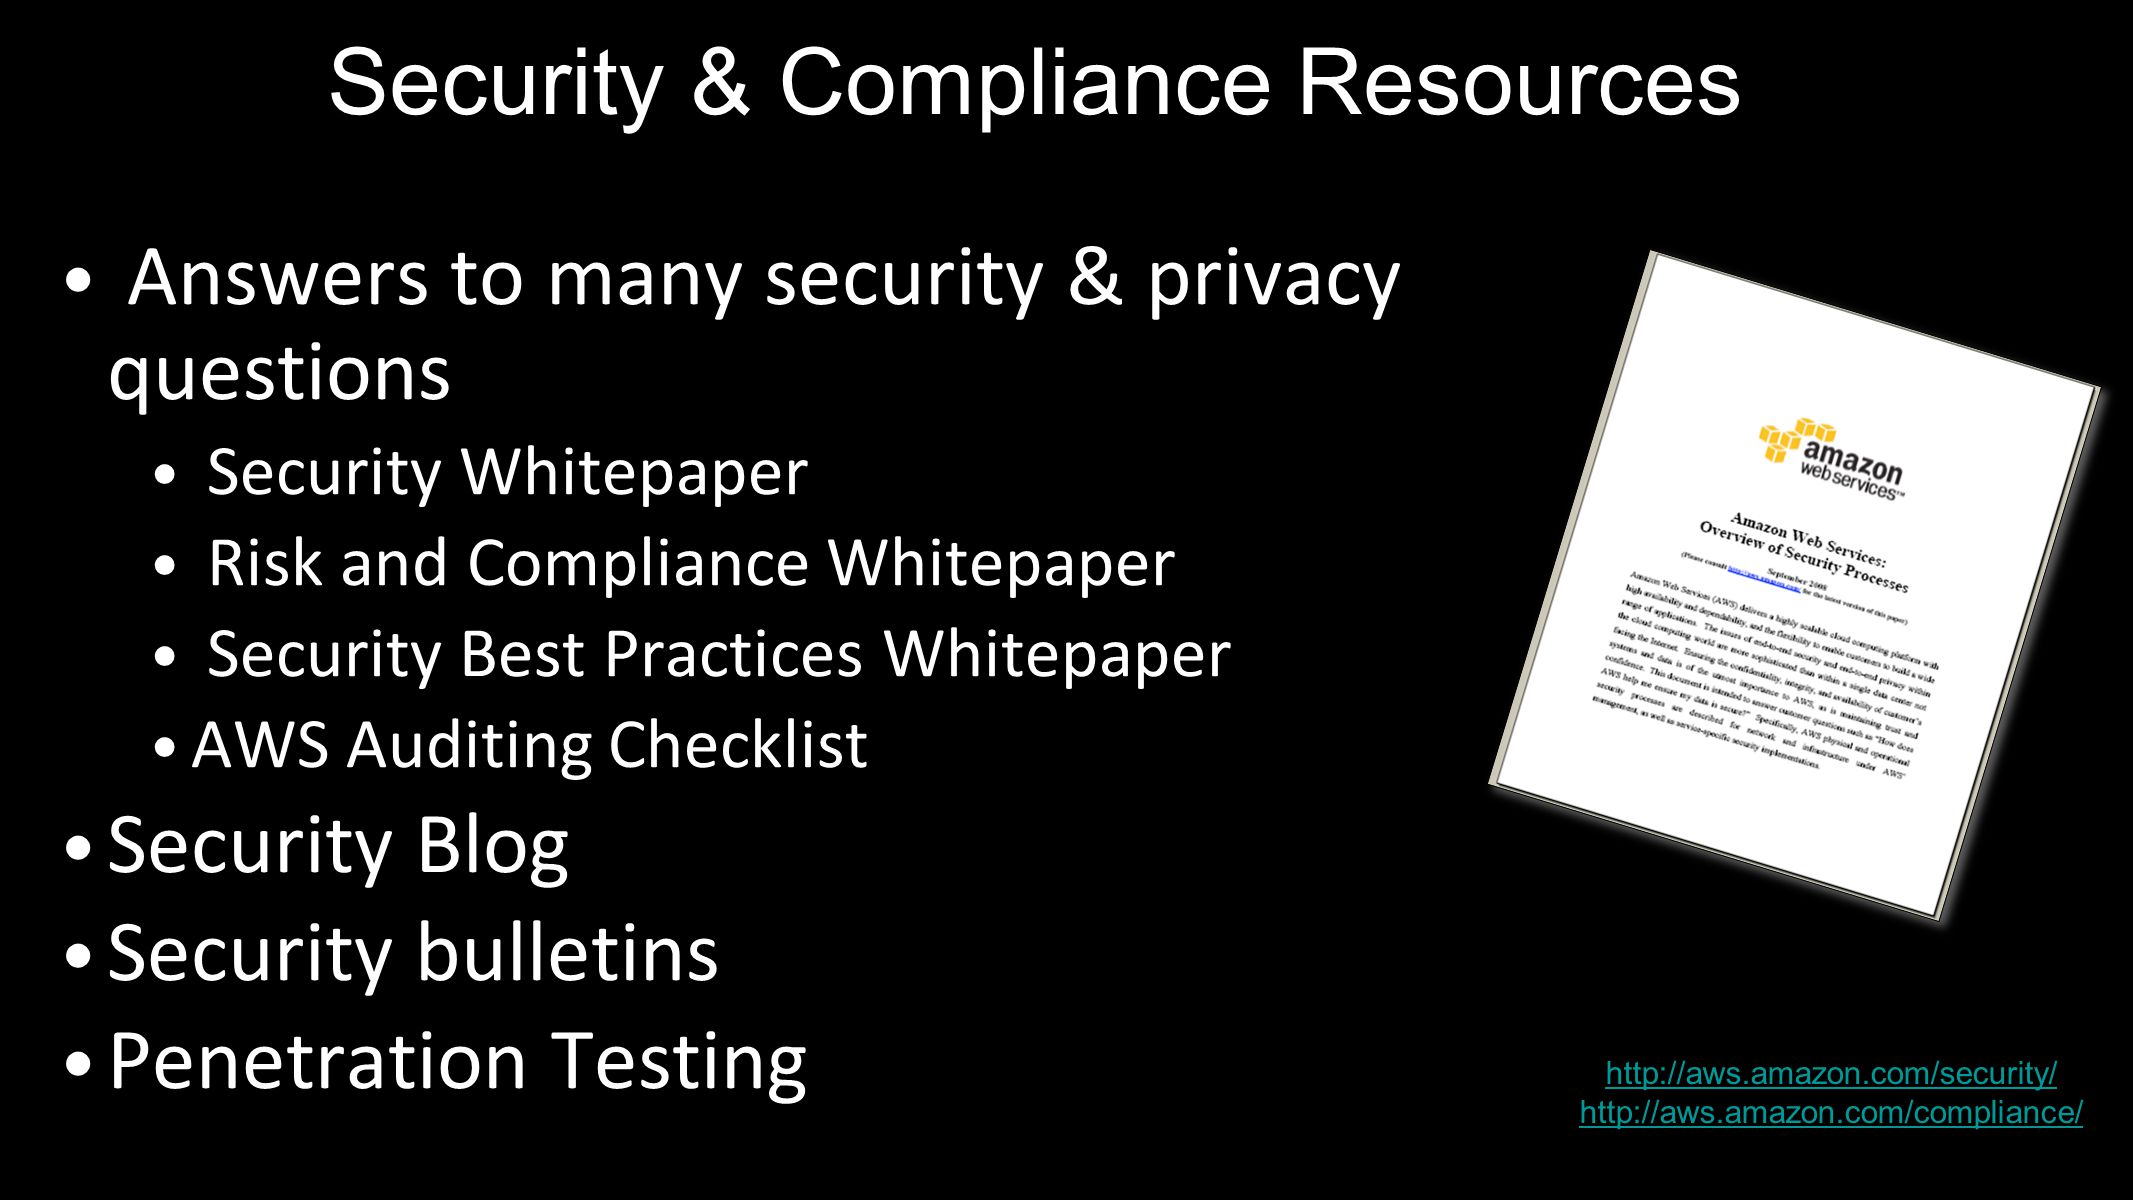 Answers to many security & privacy questions Security Whitepaper Risk and Compliance Whitepaper Security Best Practices Whitepaper AWS Auditing Checkl